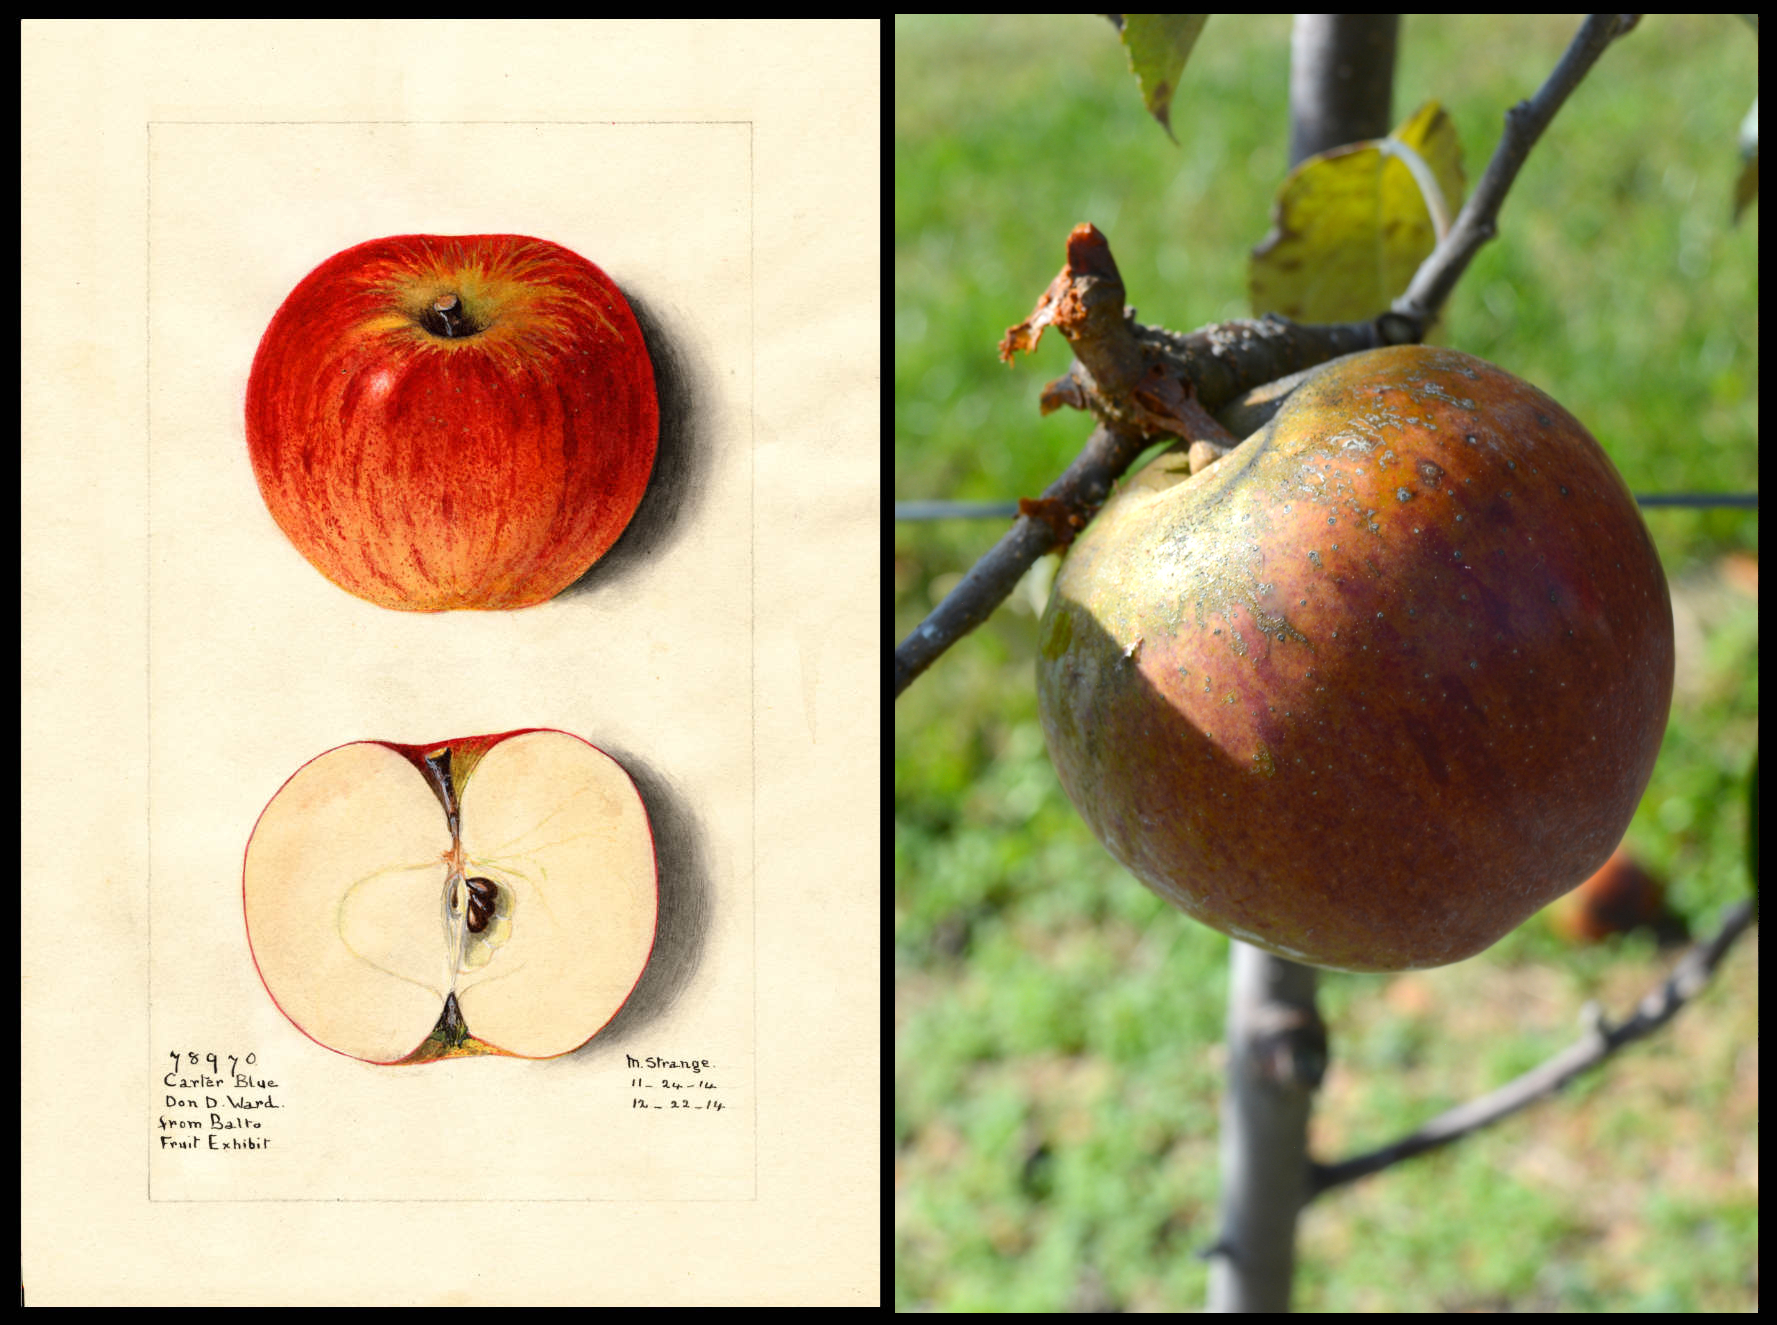 orange apple with red stripes and rough yellow skin at stem